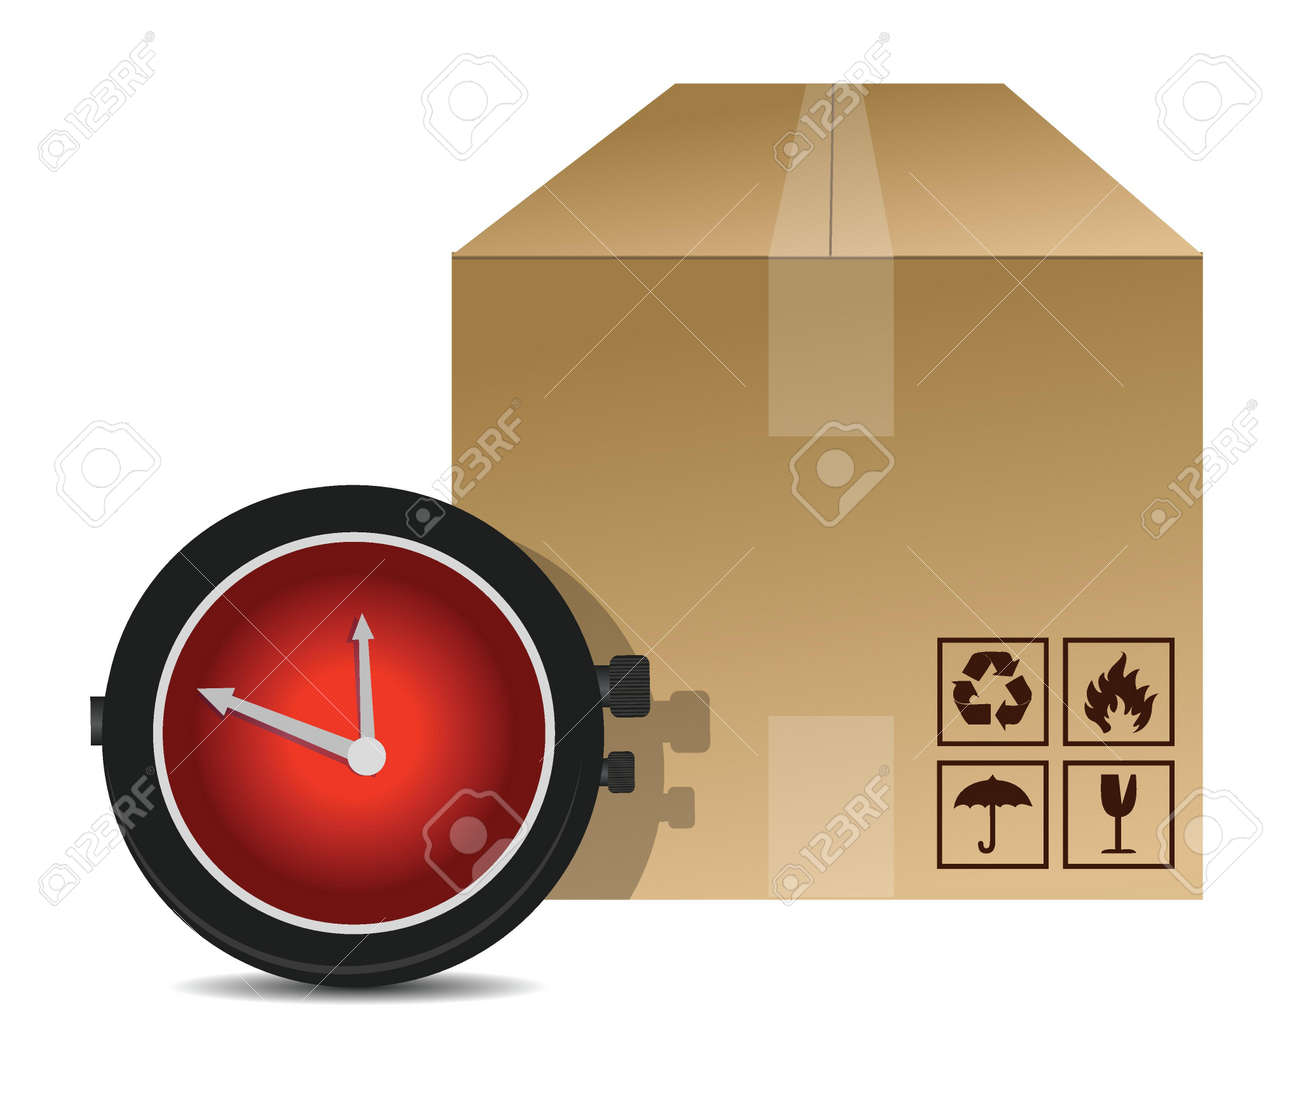 watch and box shipping illustration design over a white background Stock Vector - 16512791